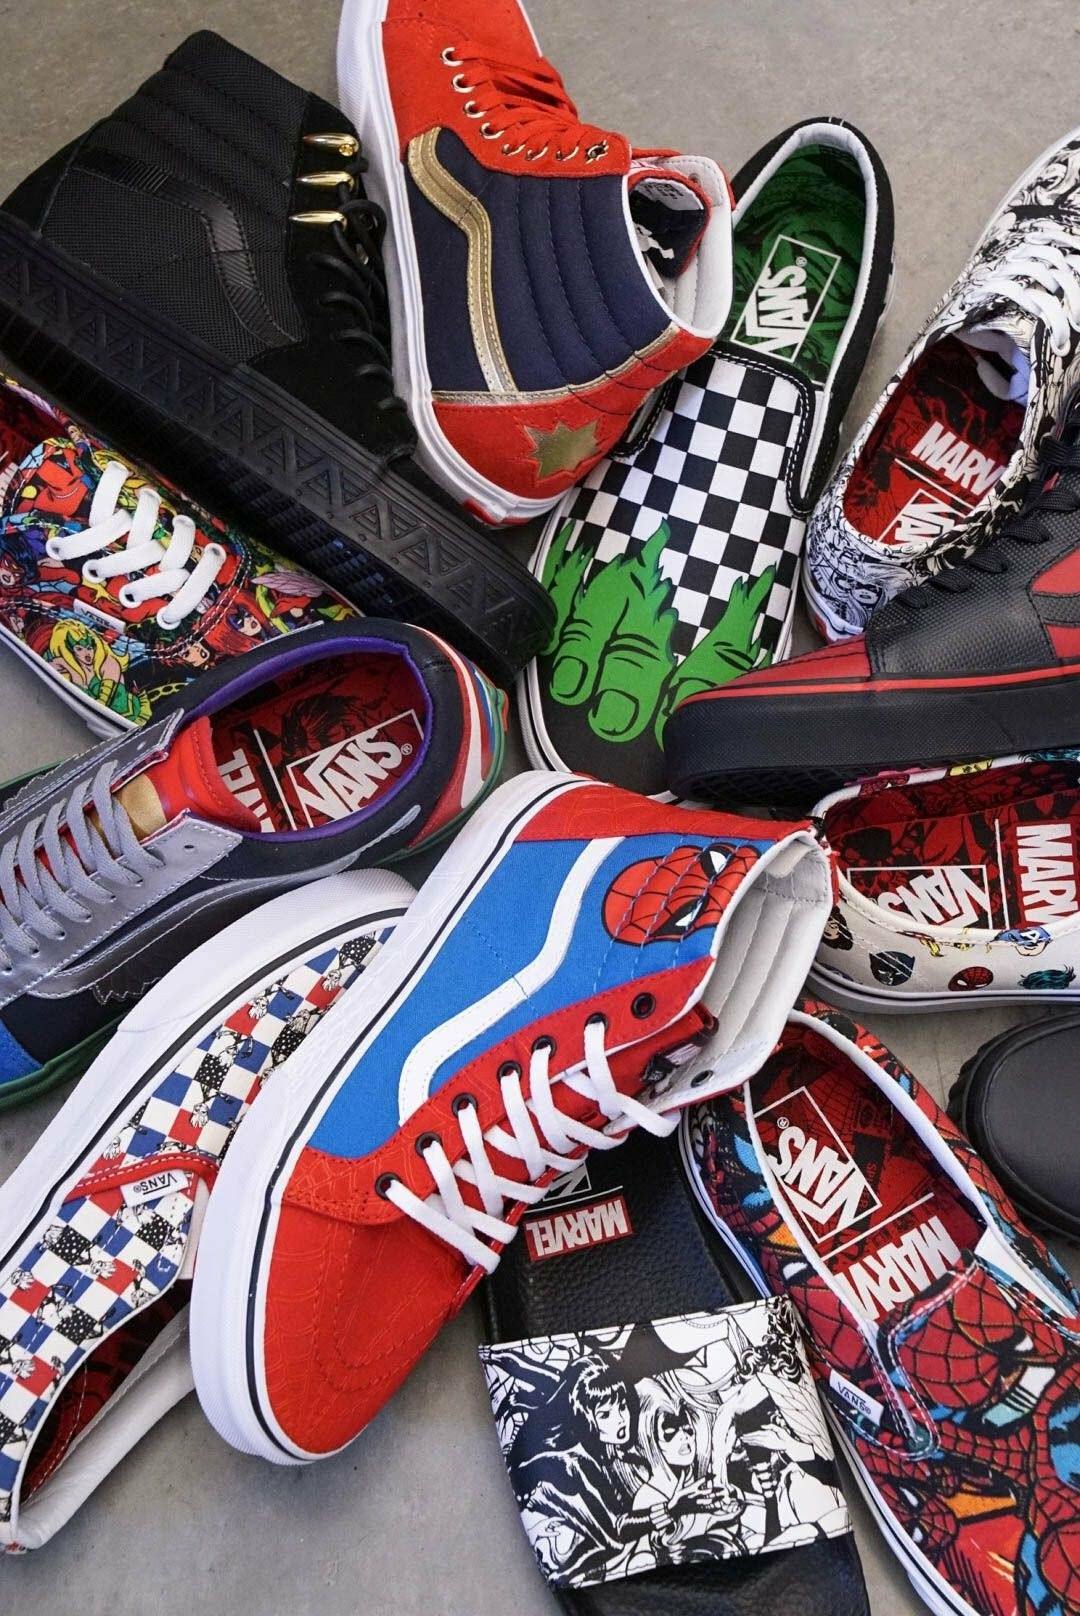 Insistir abrazo Cambios de  Pin by Jessika Canelas on mimos capitalistas   Marvel shoes, Marvel  clothes, Vans shoes